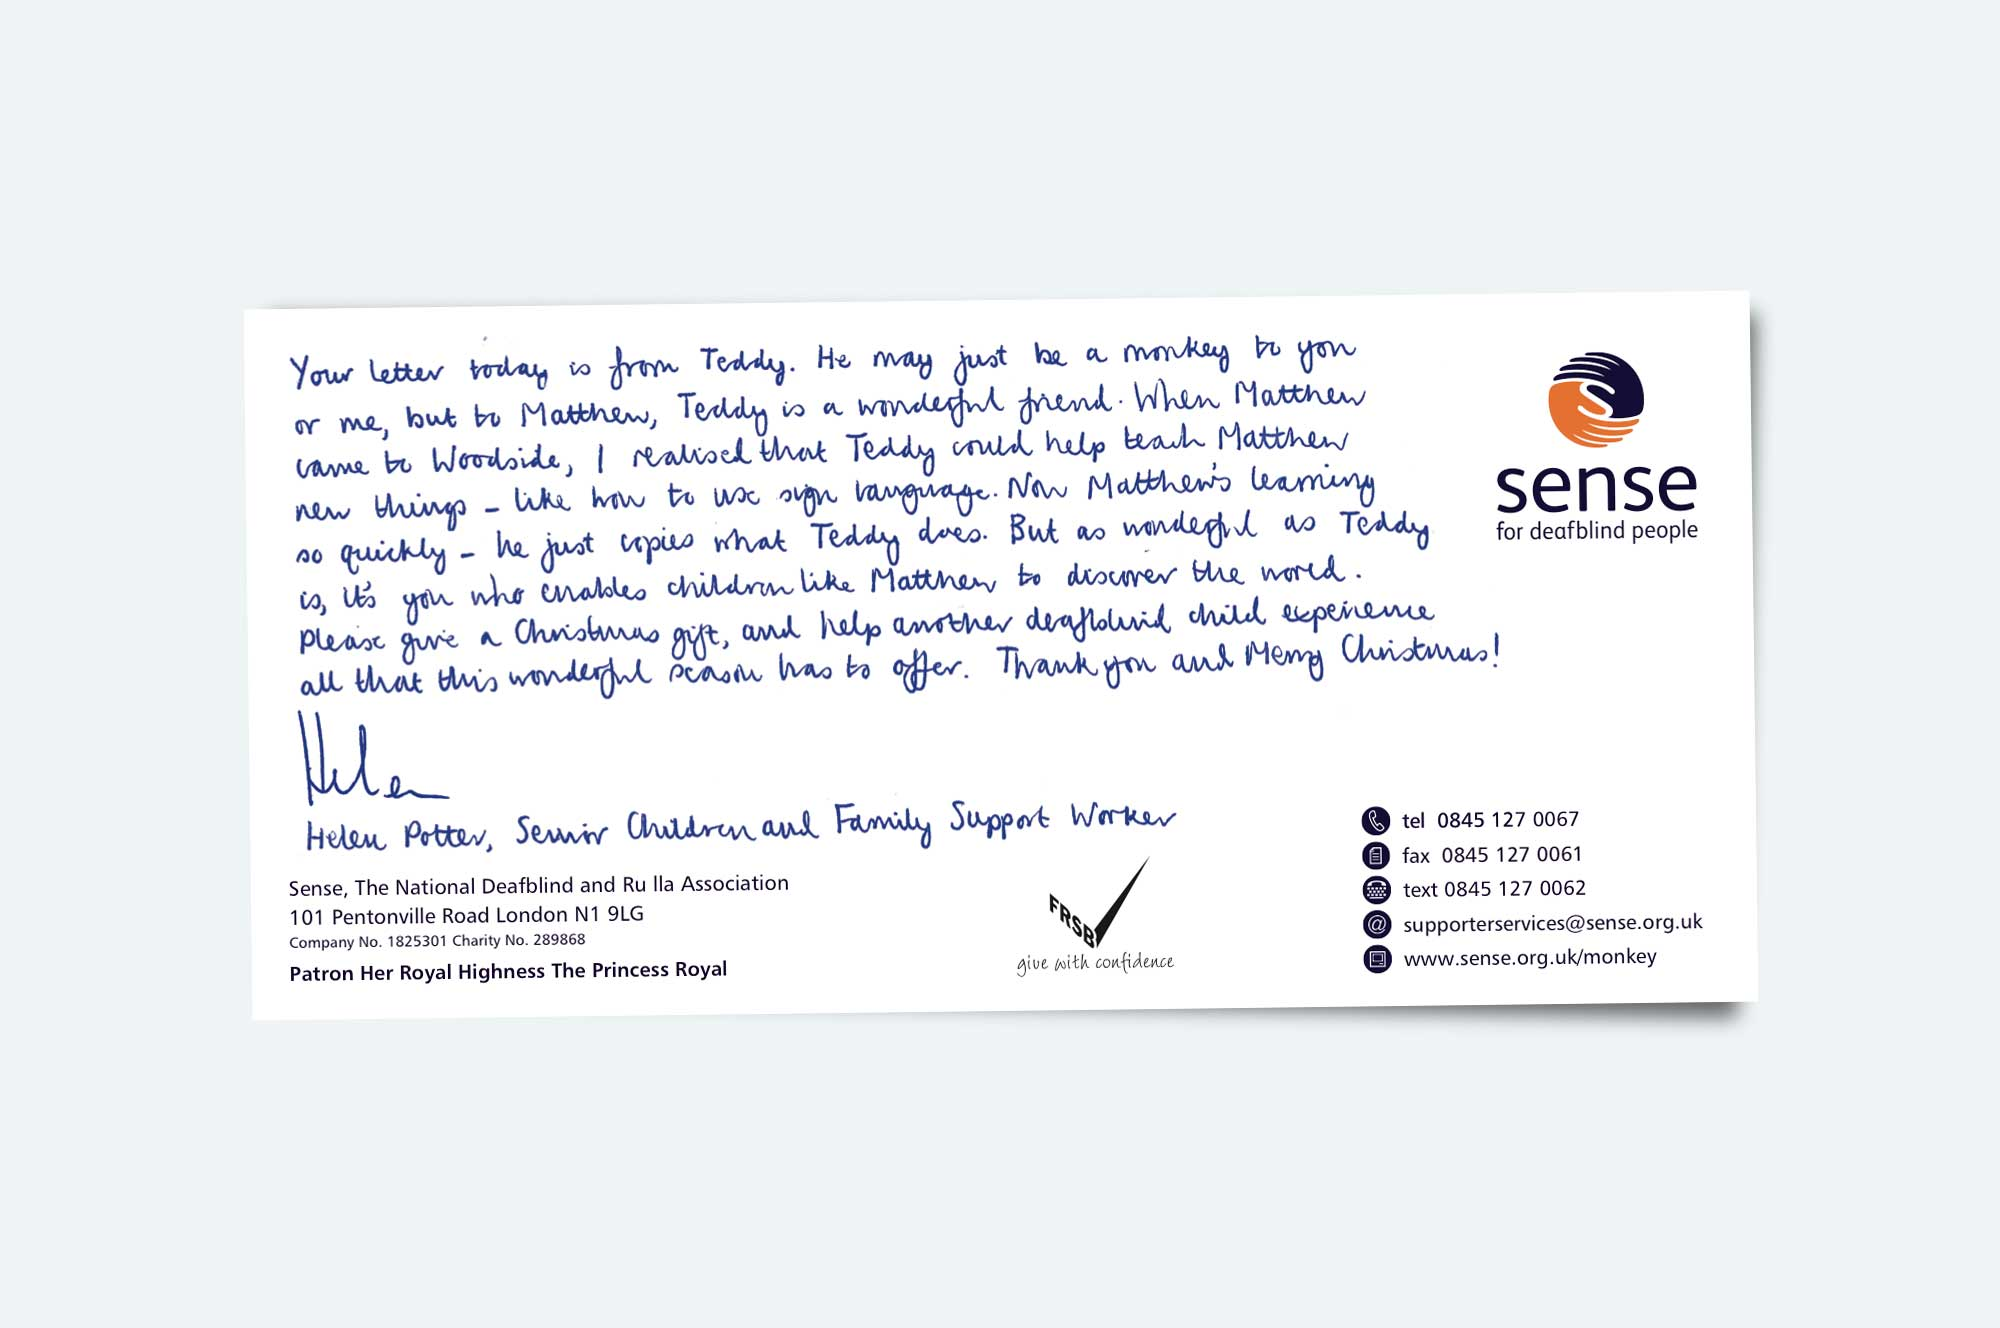 Donors also receive a comp slip from Sense's Children and Family Support Worker, explaining more about Matthew and Teddy.